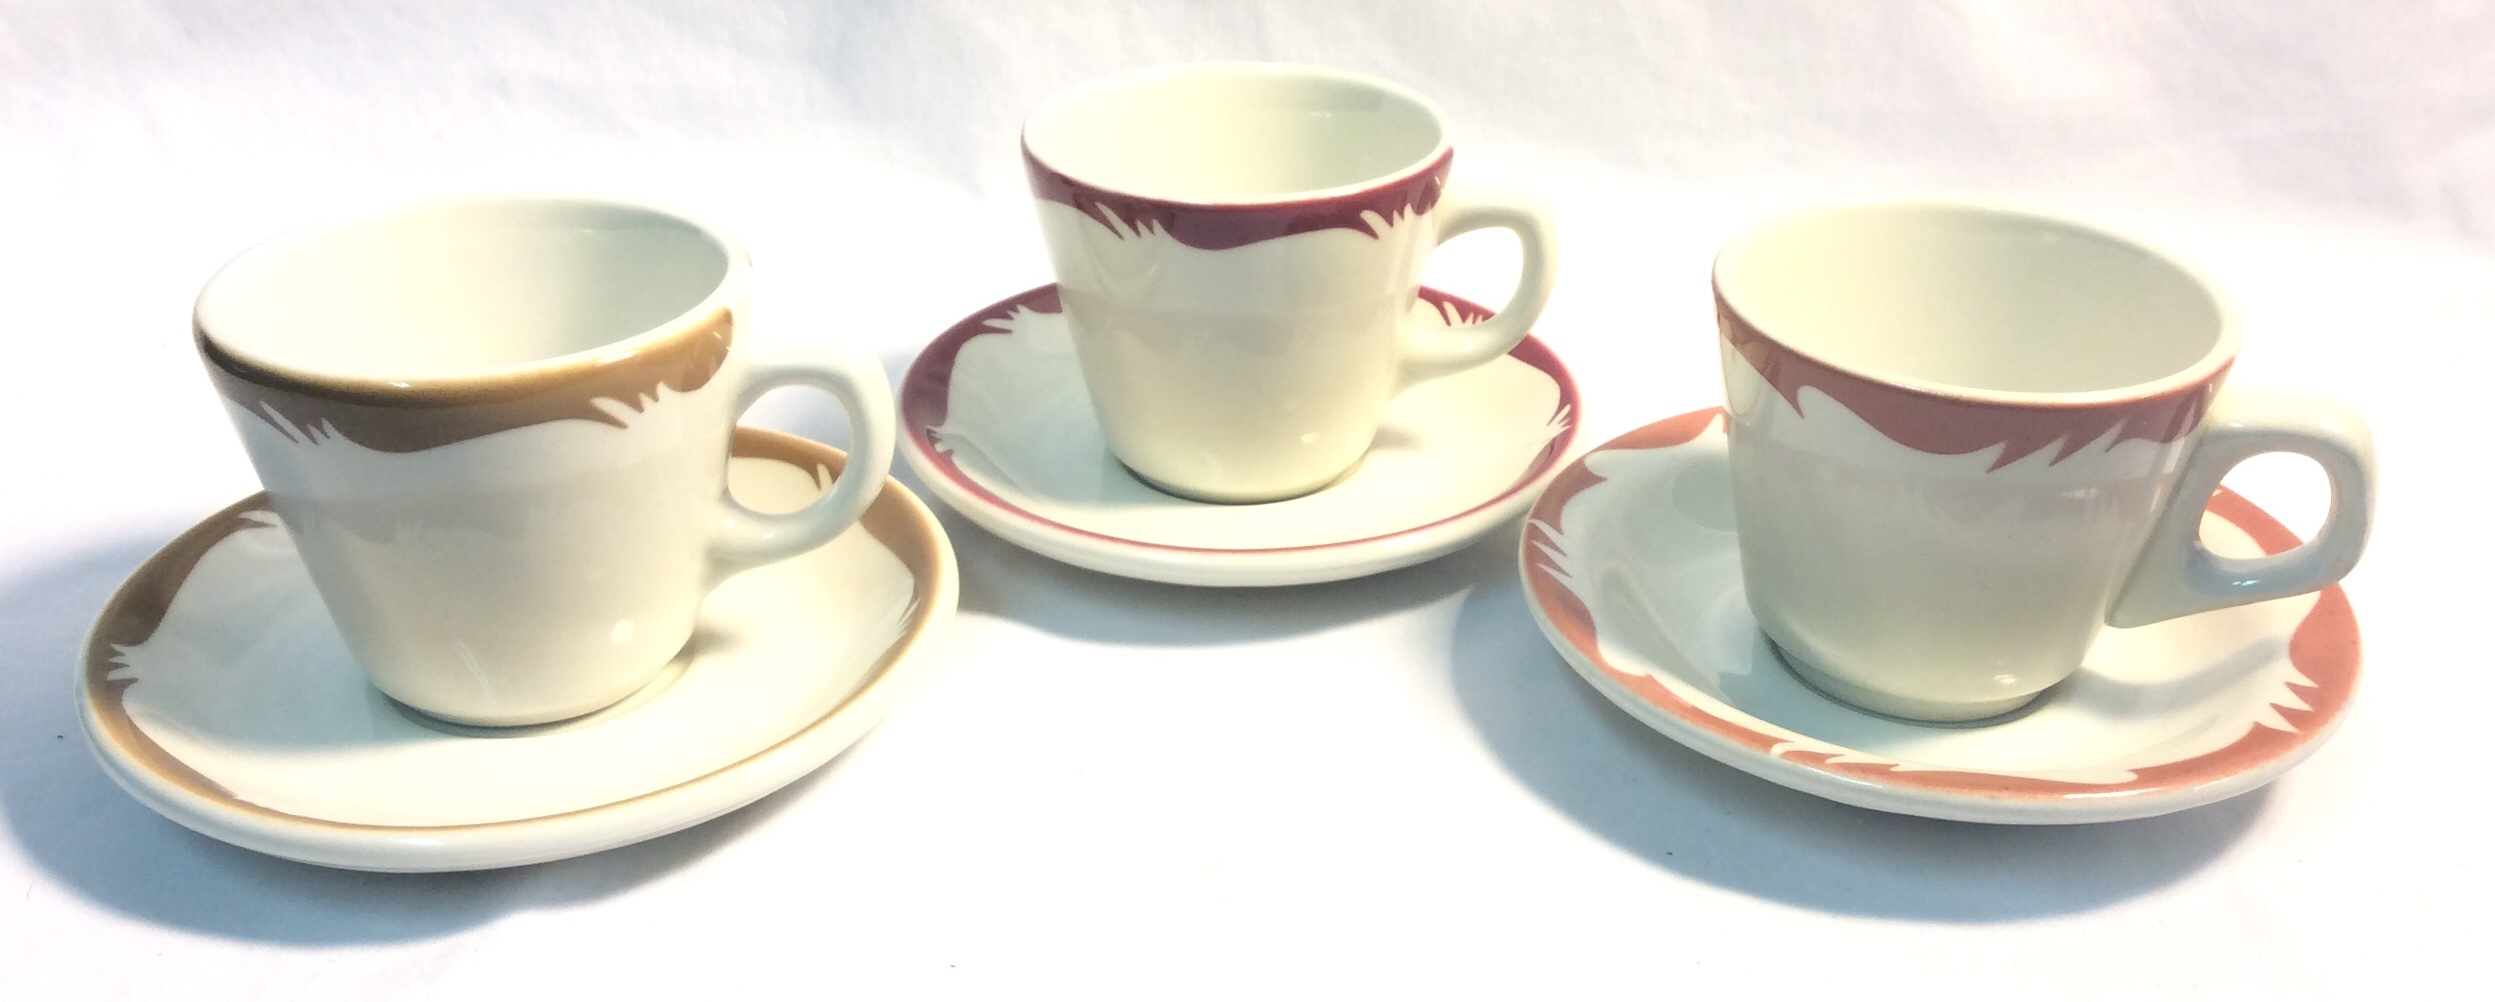 Vintage Diner Cups and saucers; sets x6 brown, x 13 red, x10 rose - x32 cups, x35 saucers